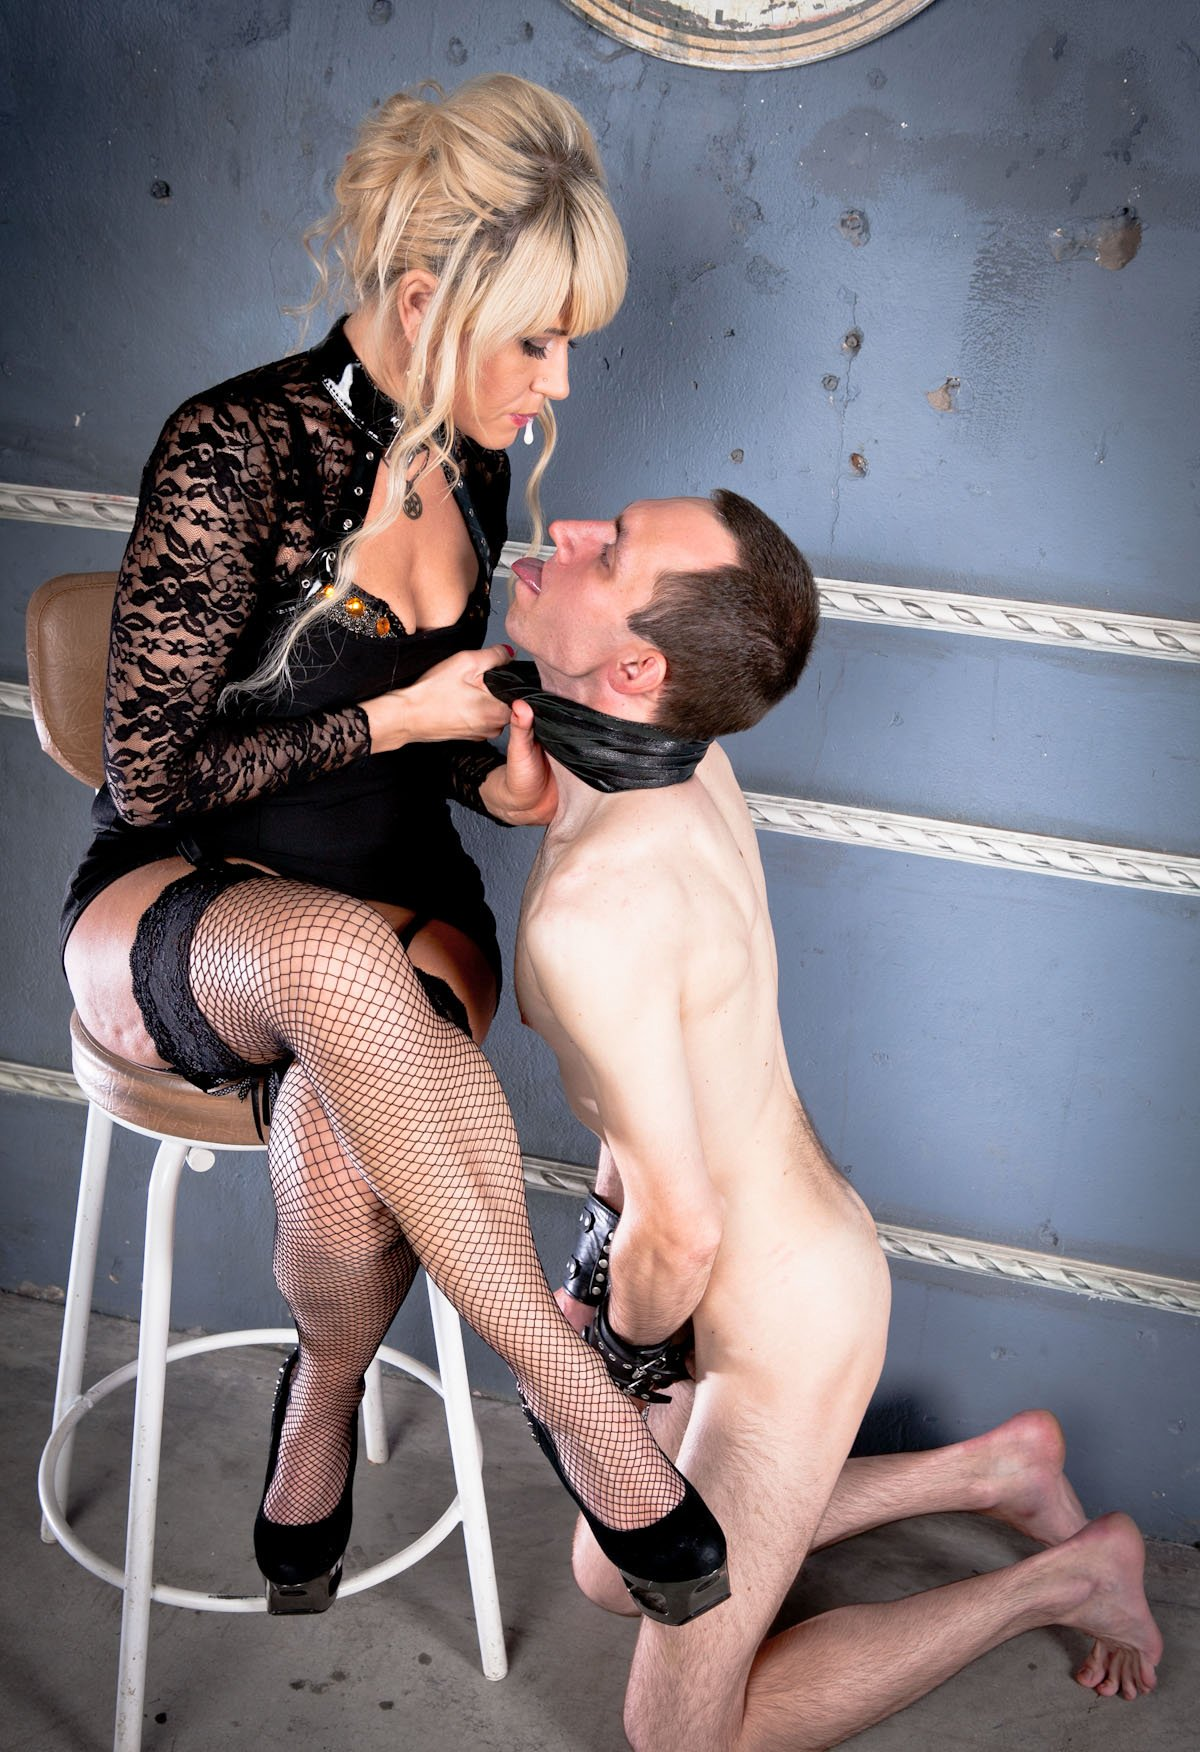 Foot slave teased by two dominant girls